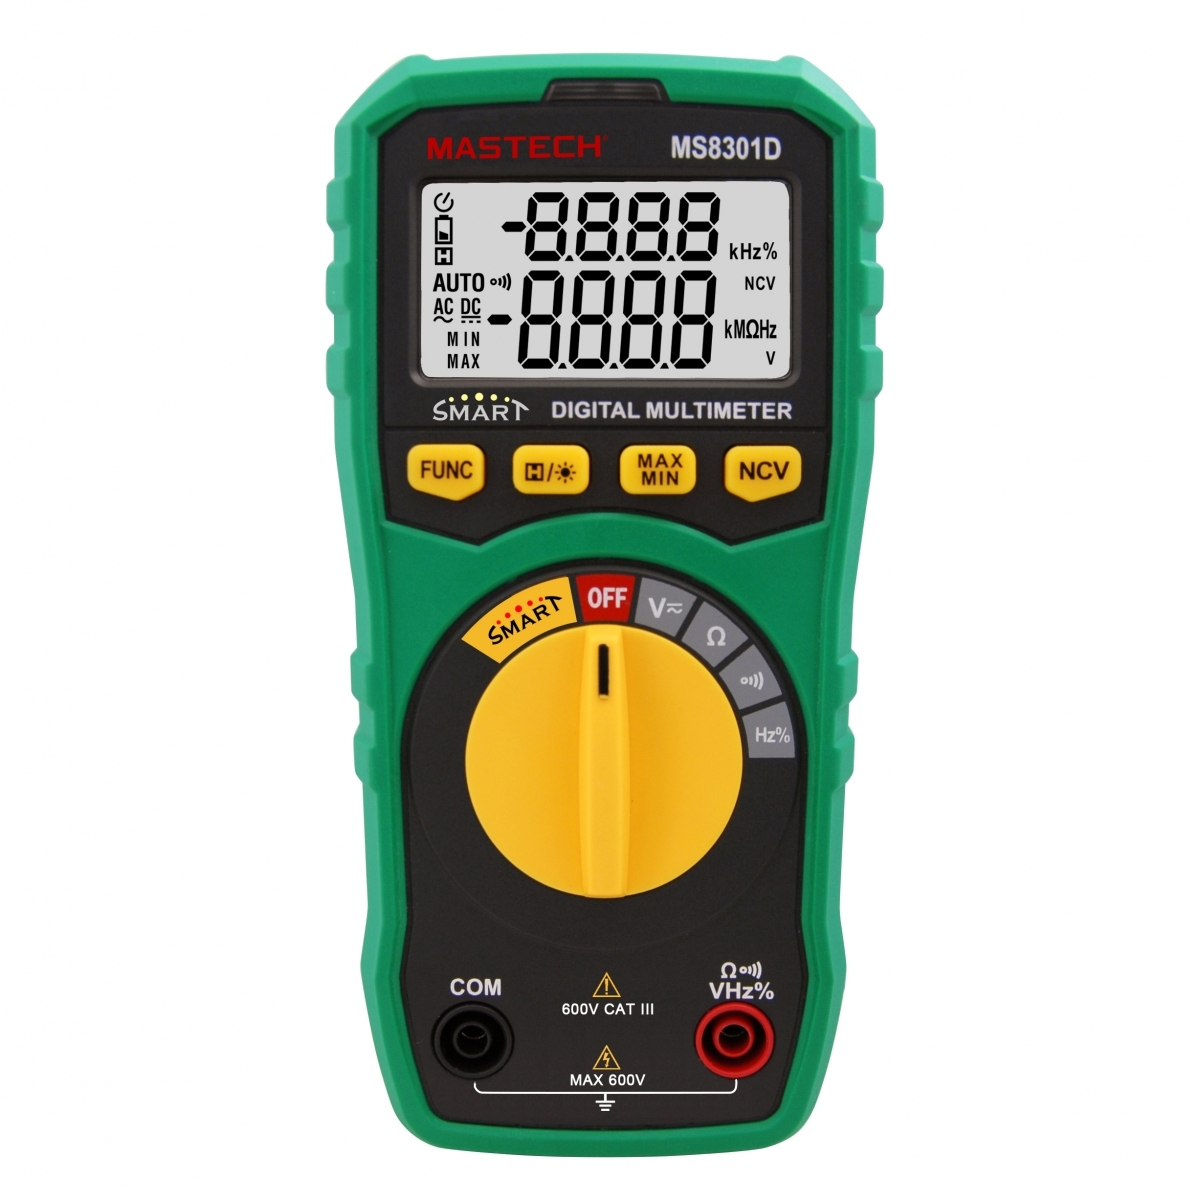 Mastech MS8301D Smart Digital Multimeter